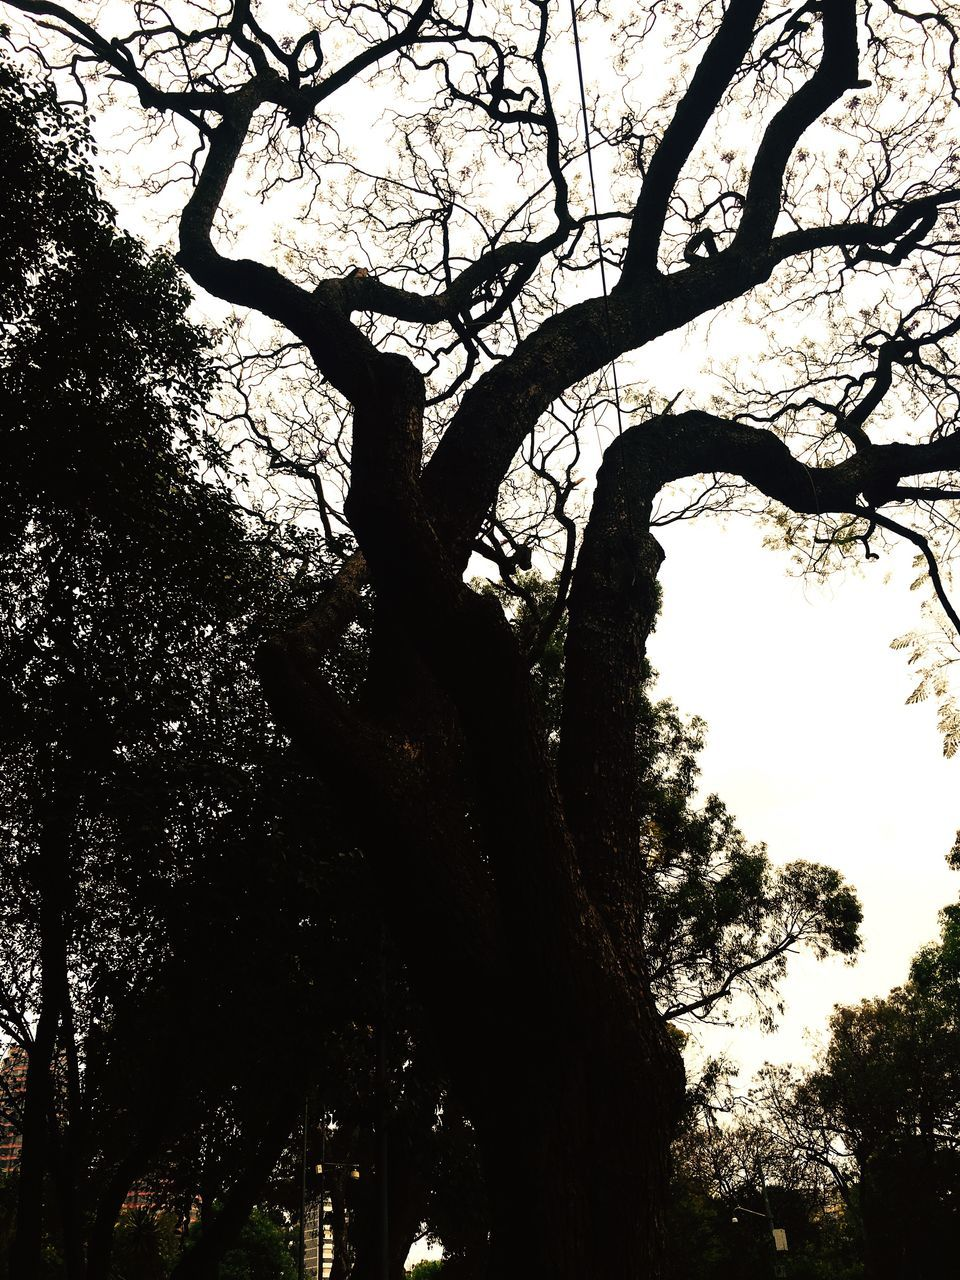 tree, branch, low angle view, tree trunk, nature, outdoors, silhouette, day, growth, no people, sky, beauty in nature